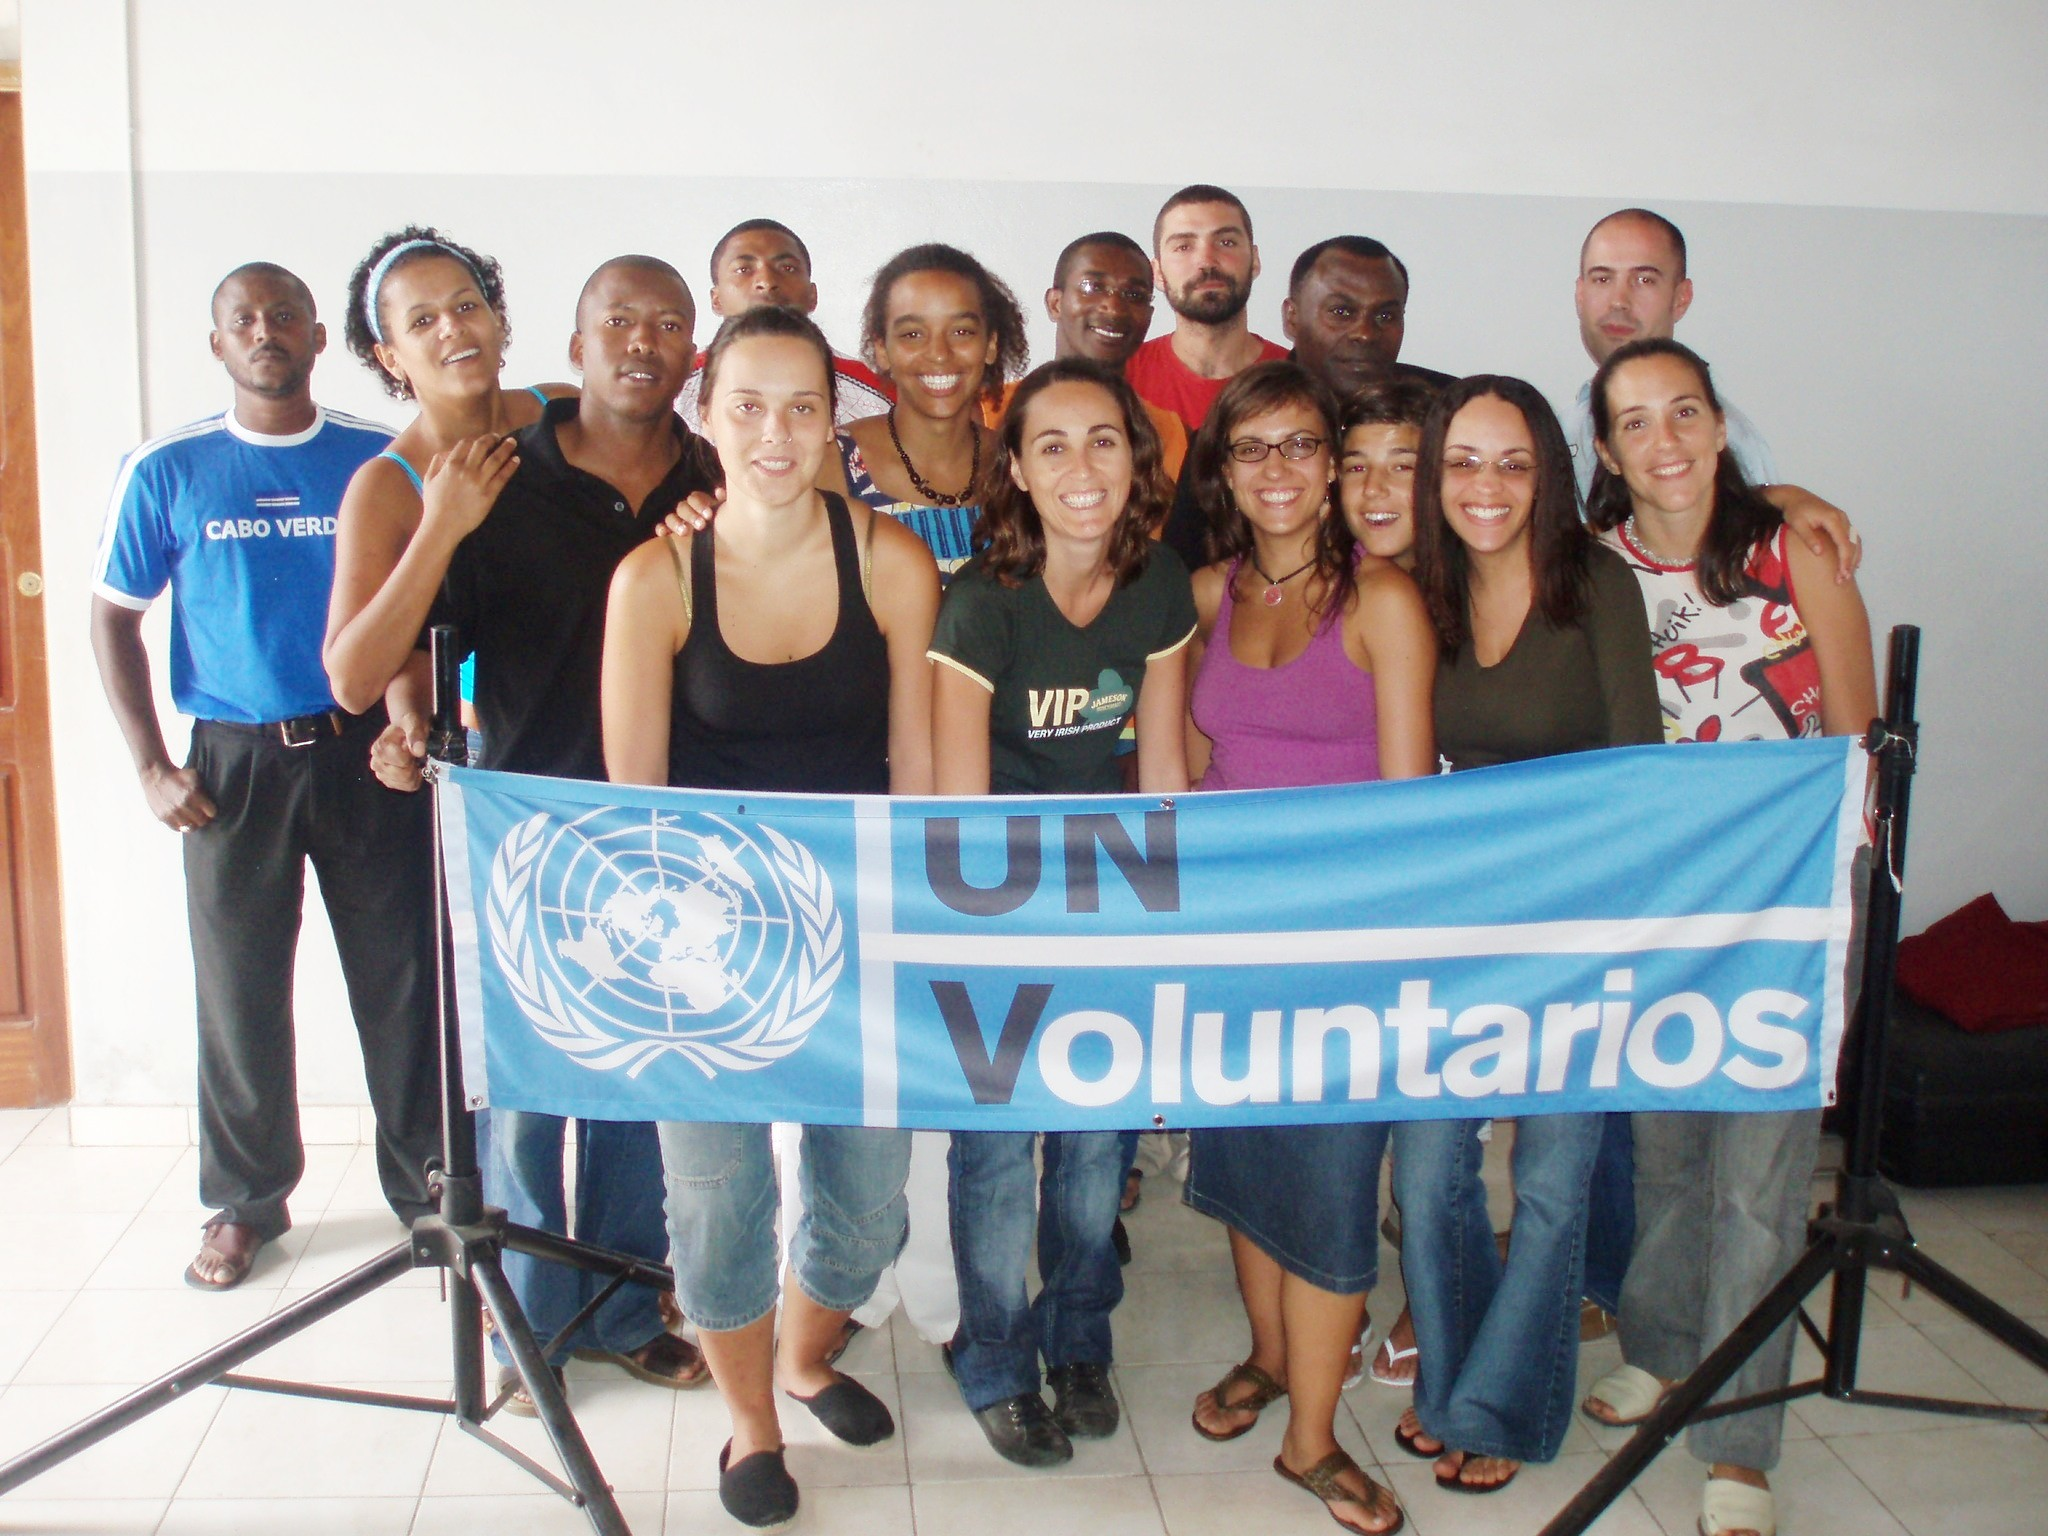 UAM Spanish Volunteers